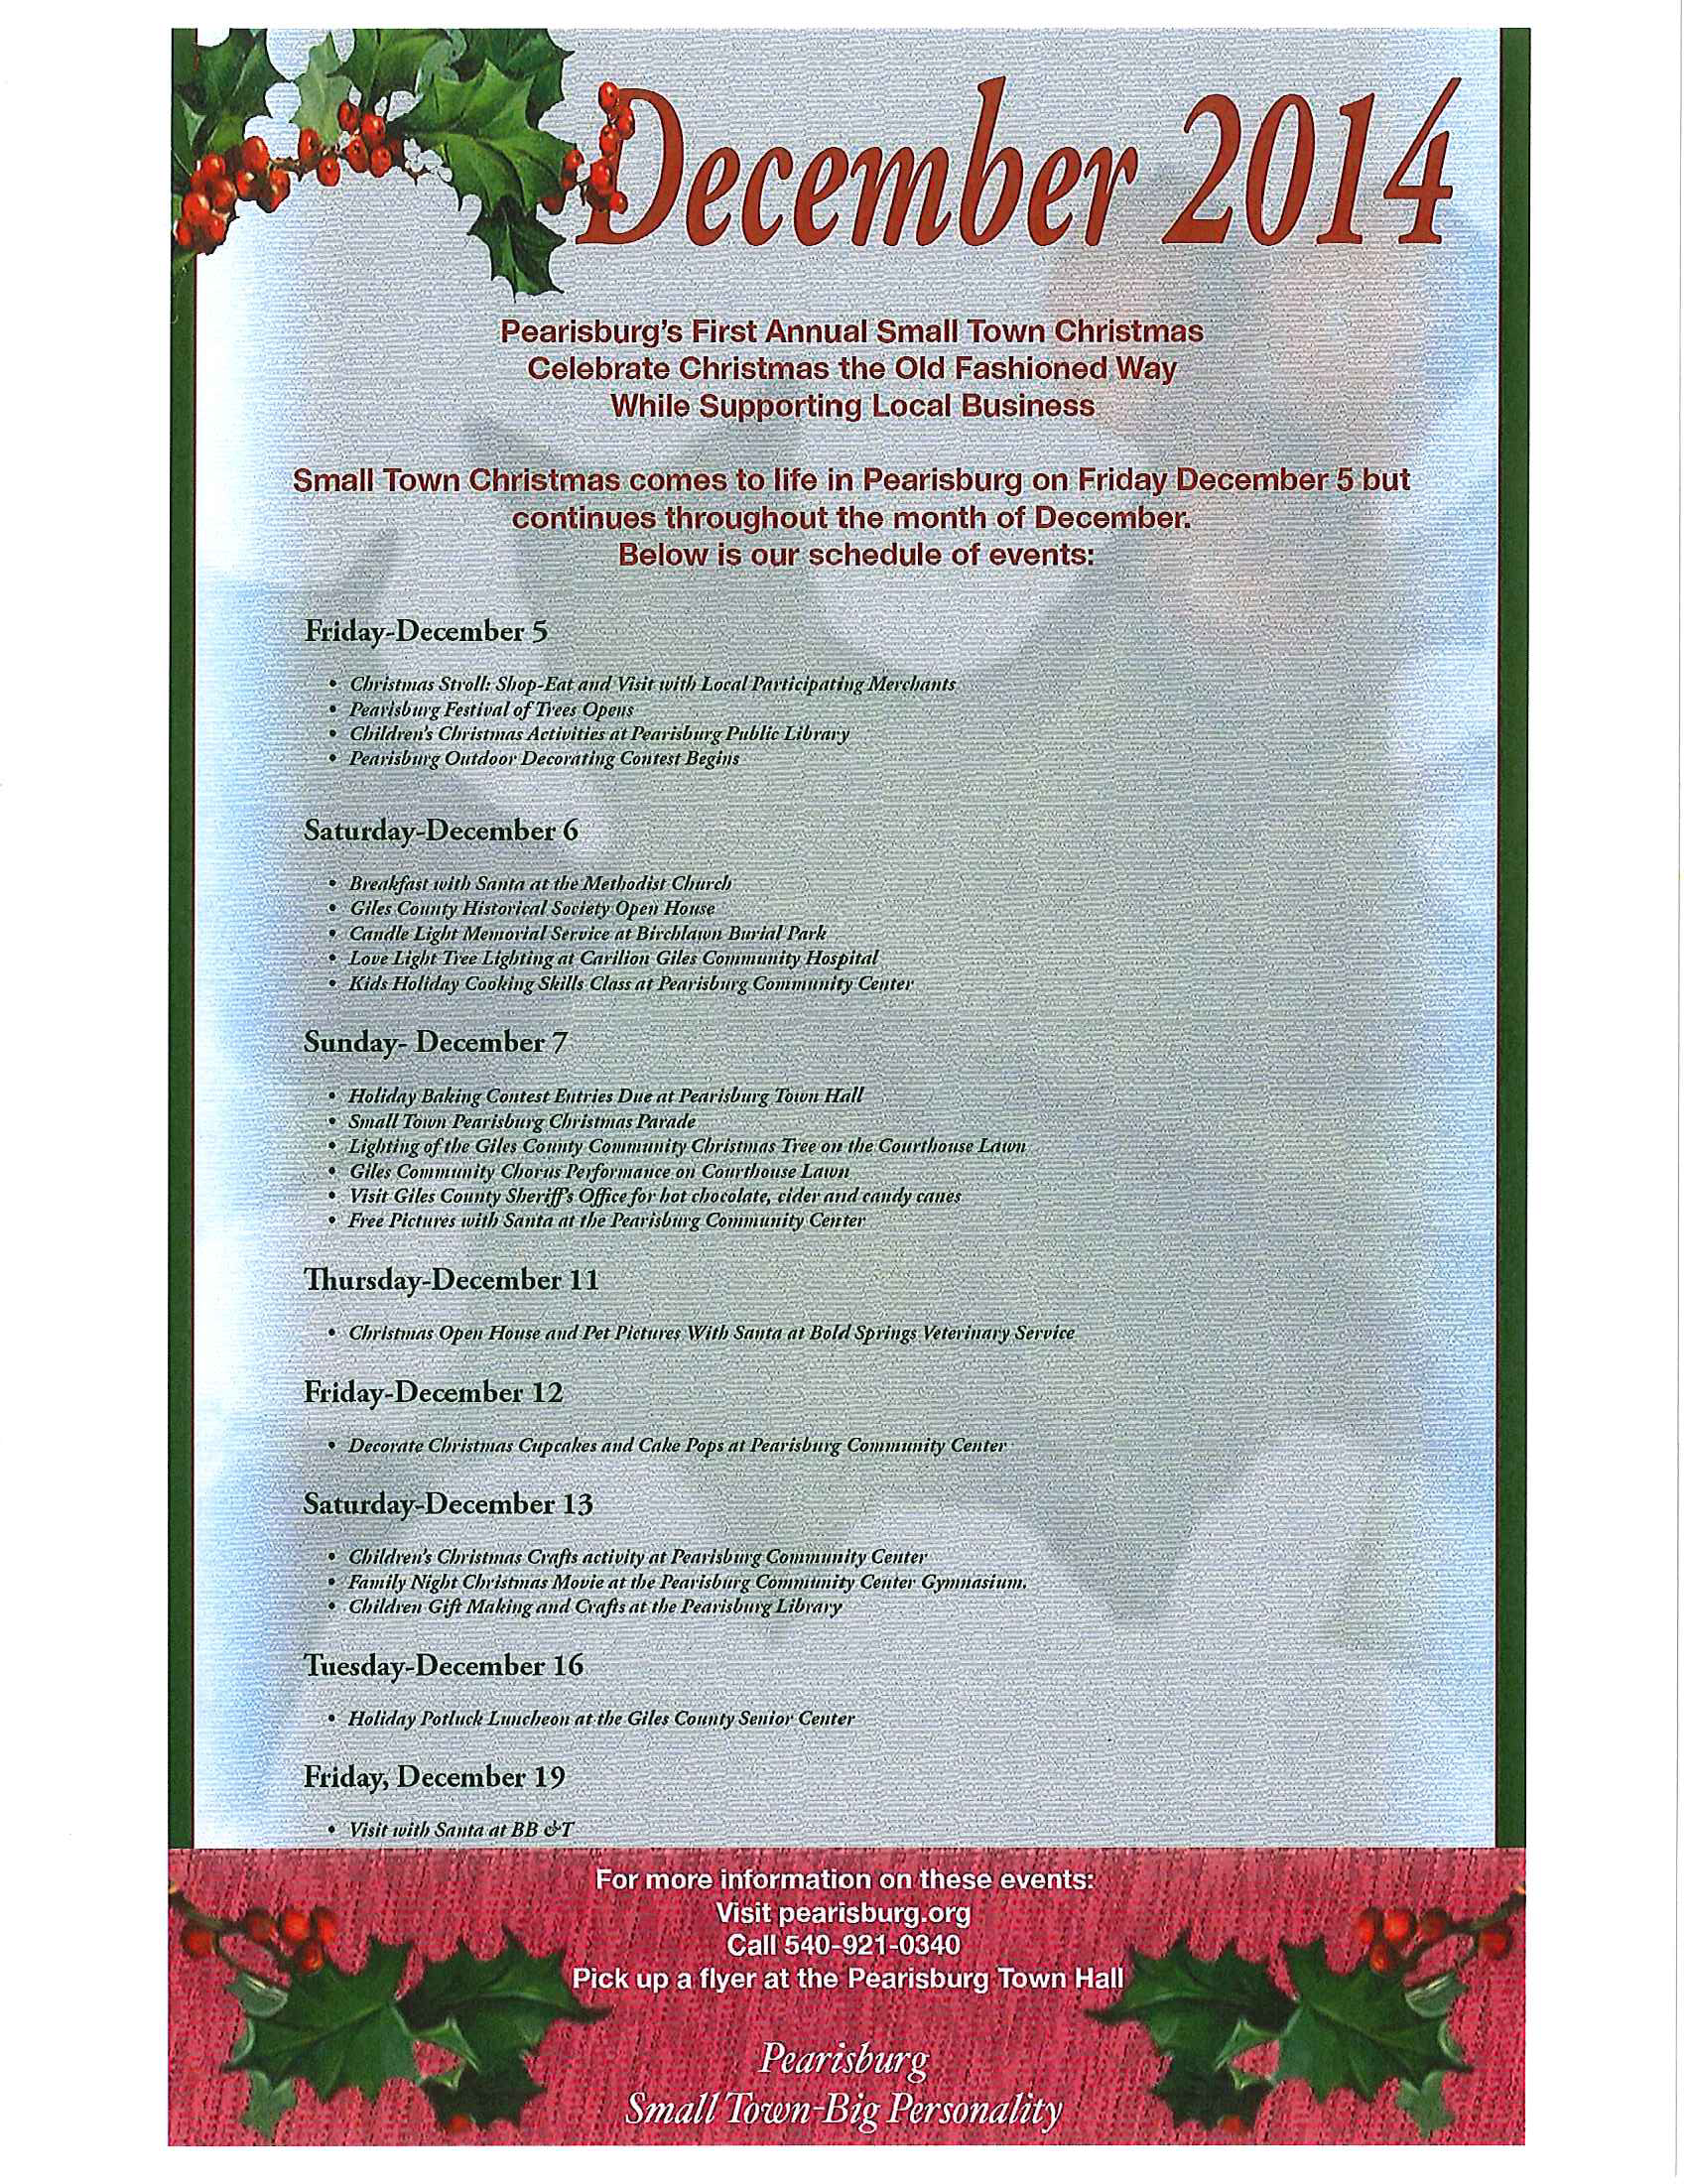 Small Town Christmas is a month-long celebration featuring the Festival of Trees, the Holiday Stroll, Christmas parade, promotions at local shops and restaurants, children crafts, family movie night, cooking classes and more starting on Friday, December 5, 2014.